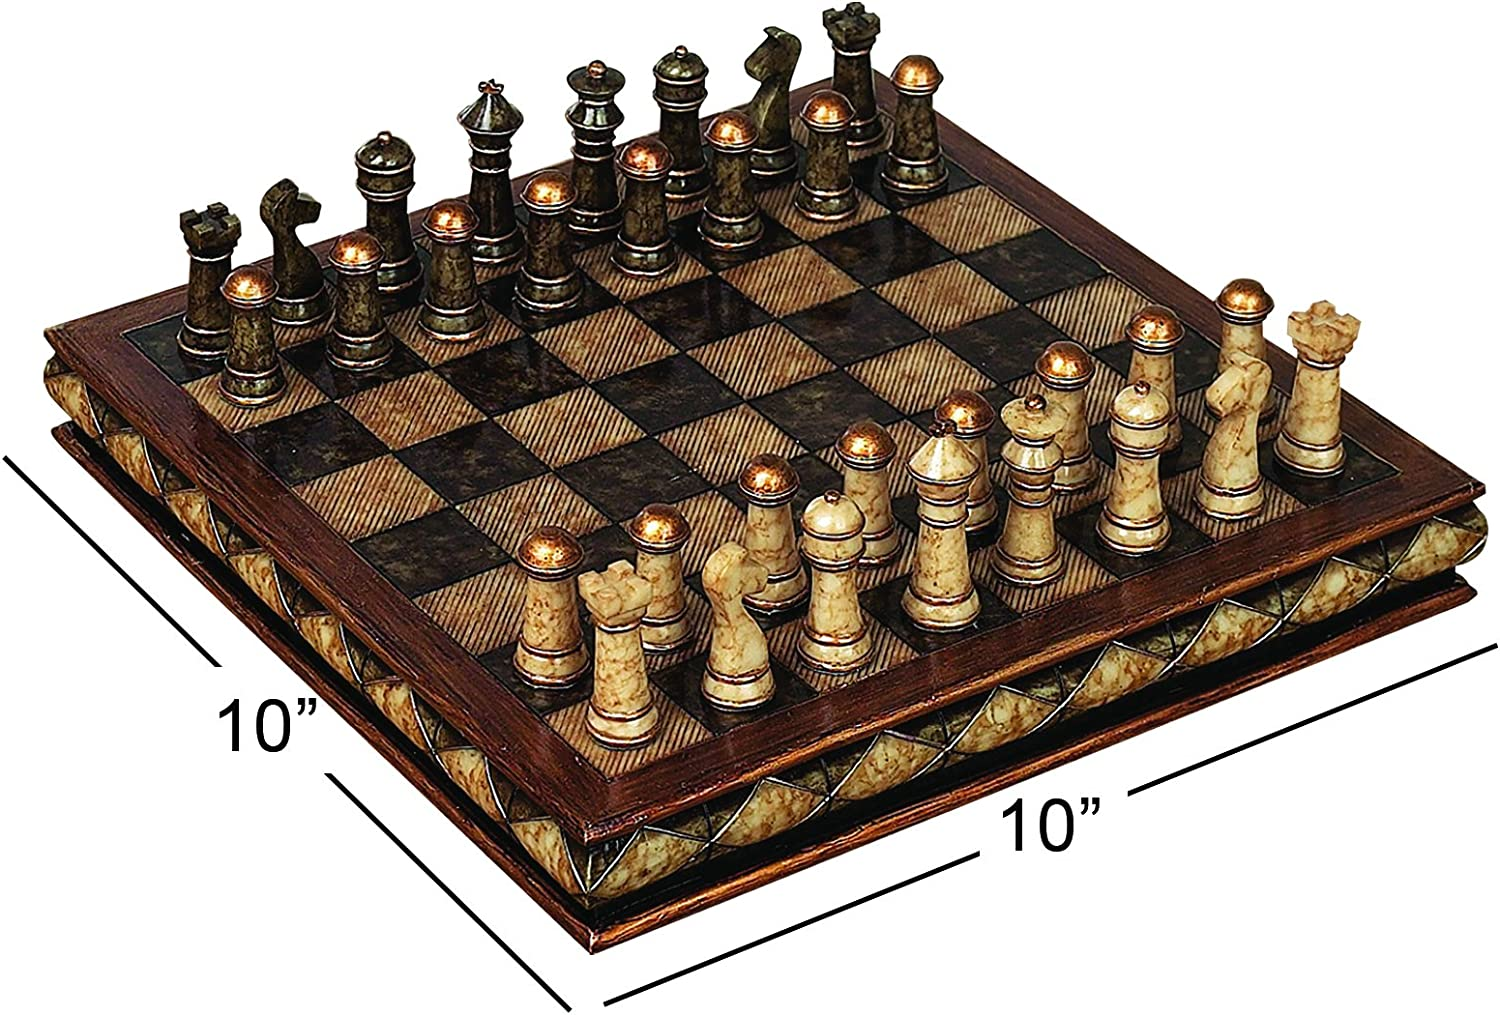 Amazon Com Deco 79 Poly Stone Chess Set 10 By 3 Inch Home Kitchen